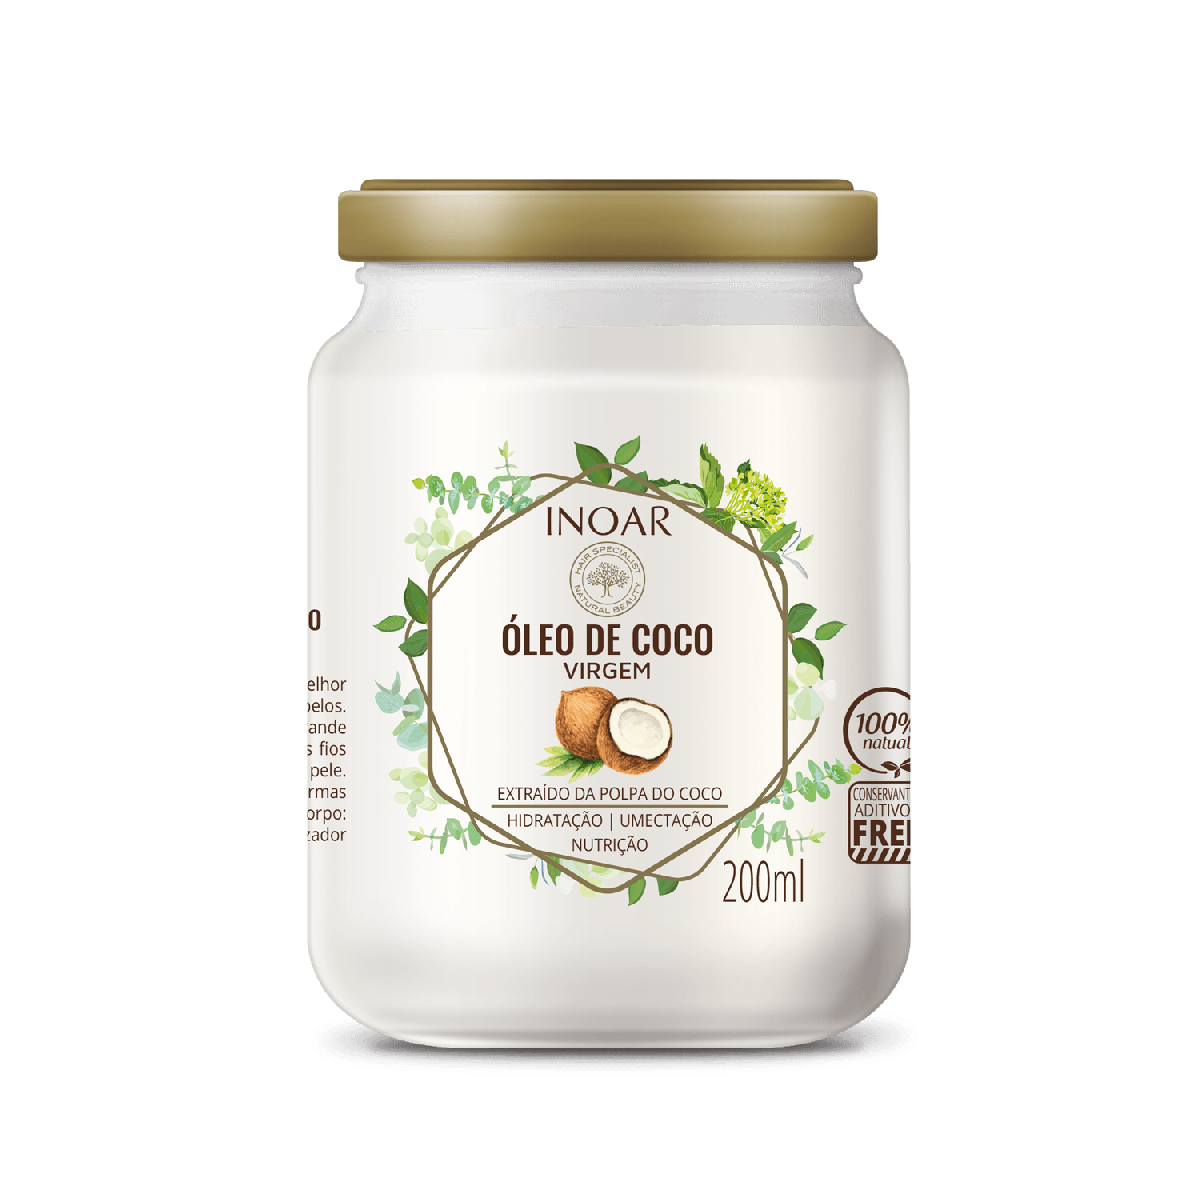 Inoar Óleo De Coco Coconut Oil - 200ml